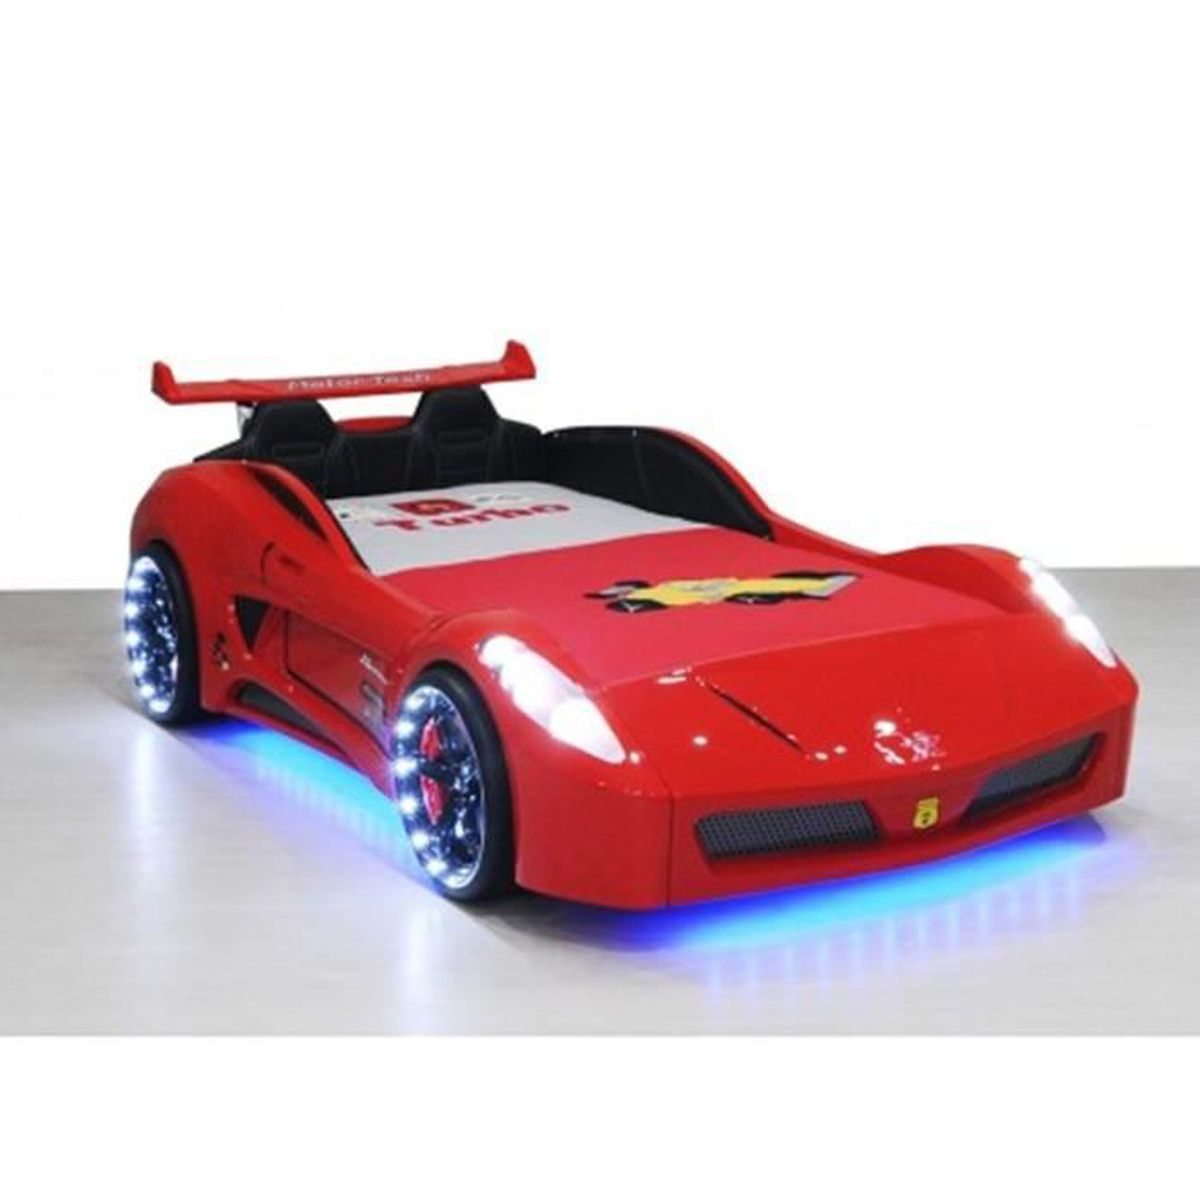 lit voiture enfant v7 avec led rouge ferrari achat vente chambre compl te lit voiture. Black Bedroom Furniture Sets. Home Design Ideas